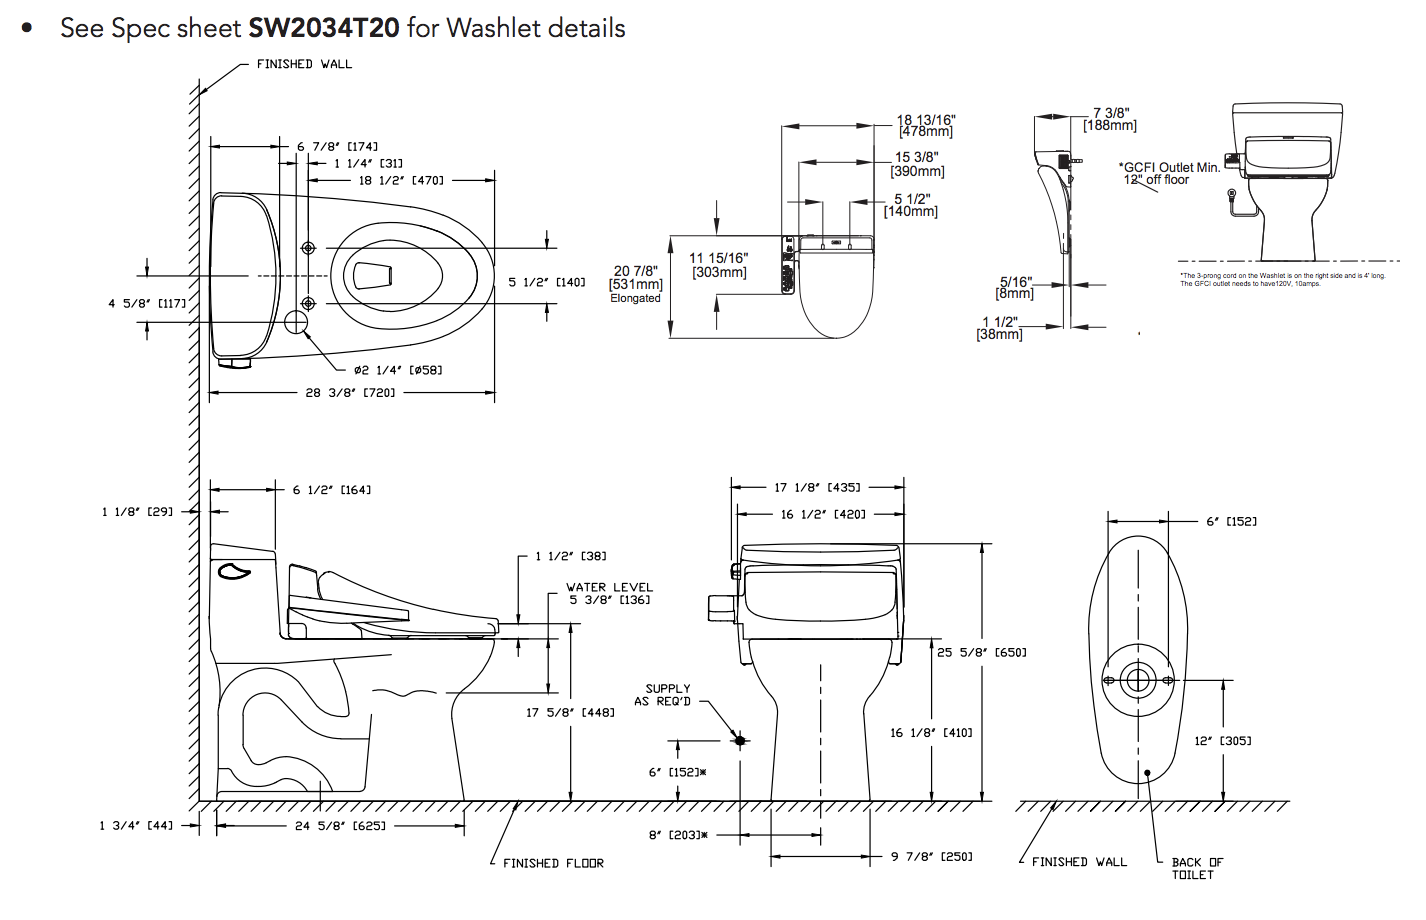 supreme-ii-washlet-c100-one-piece-toilet-and-bidet-1.28-gpf-diagram.png